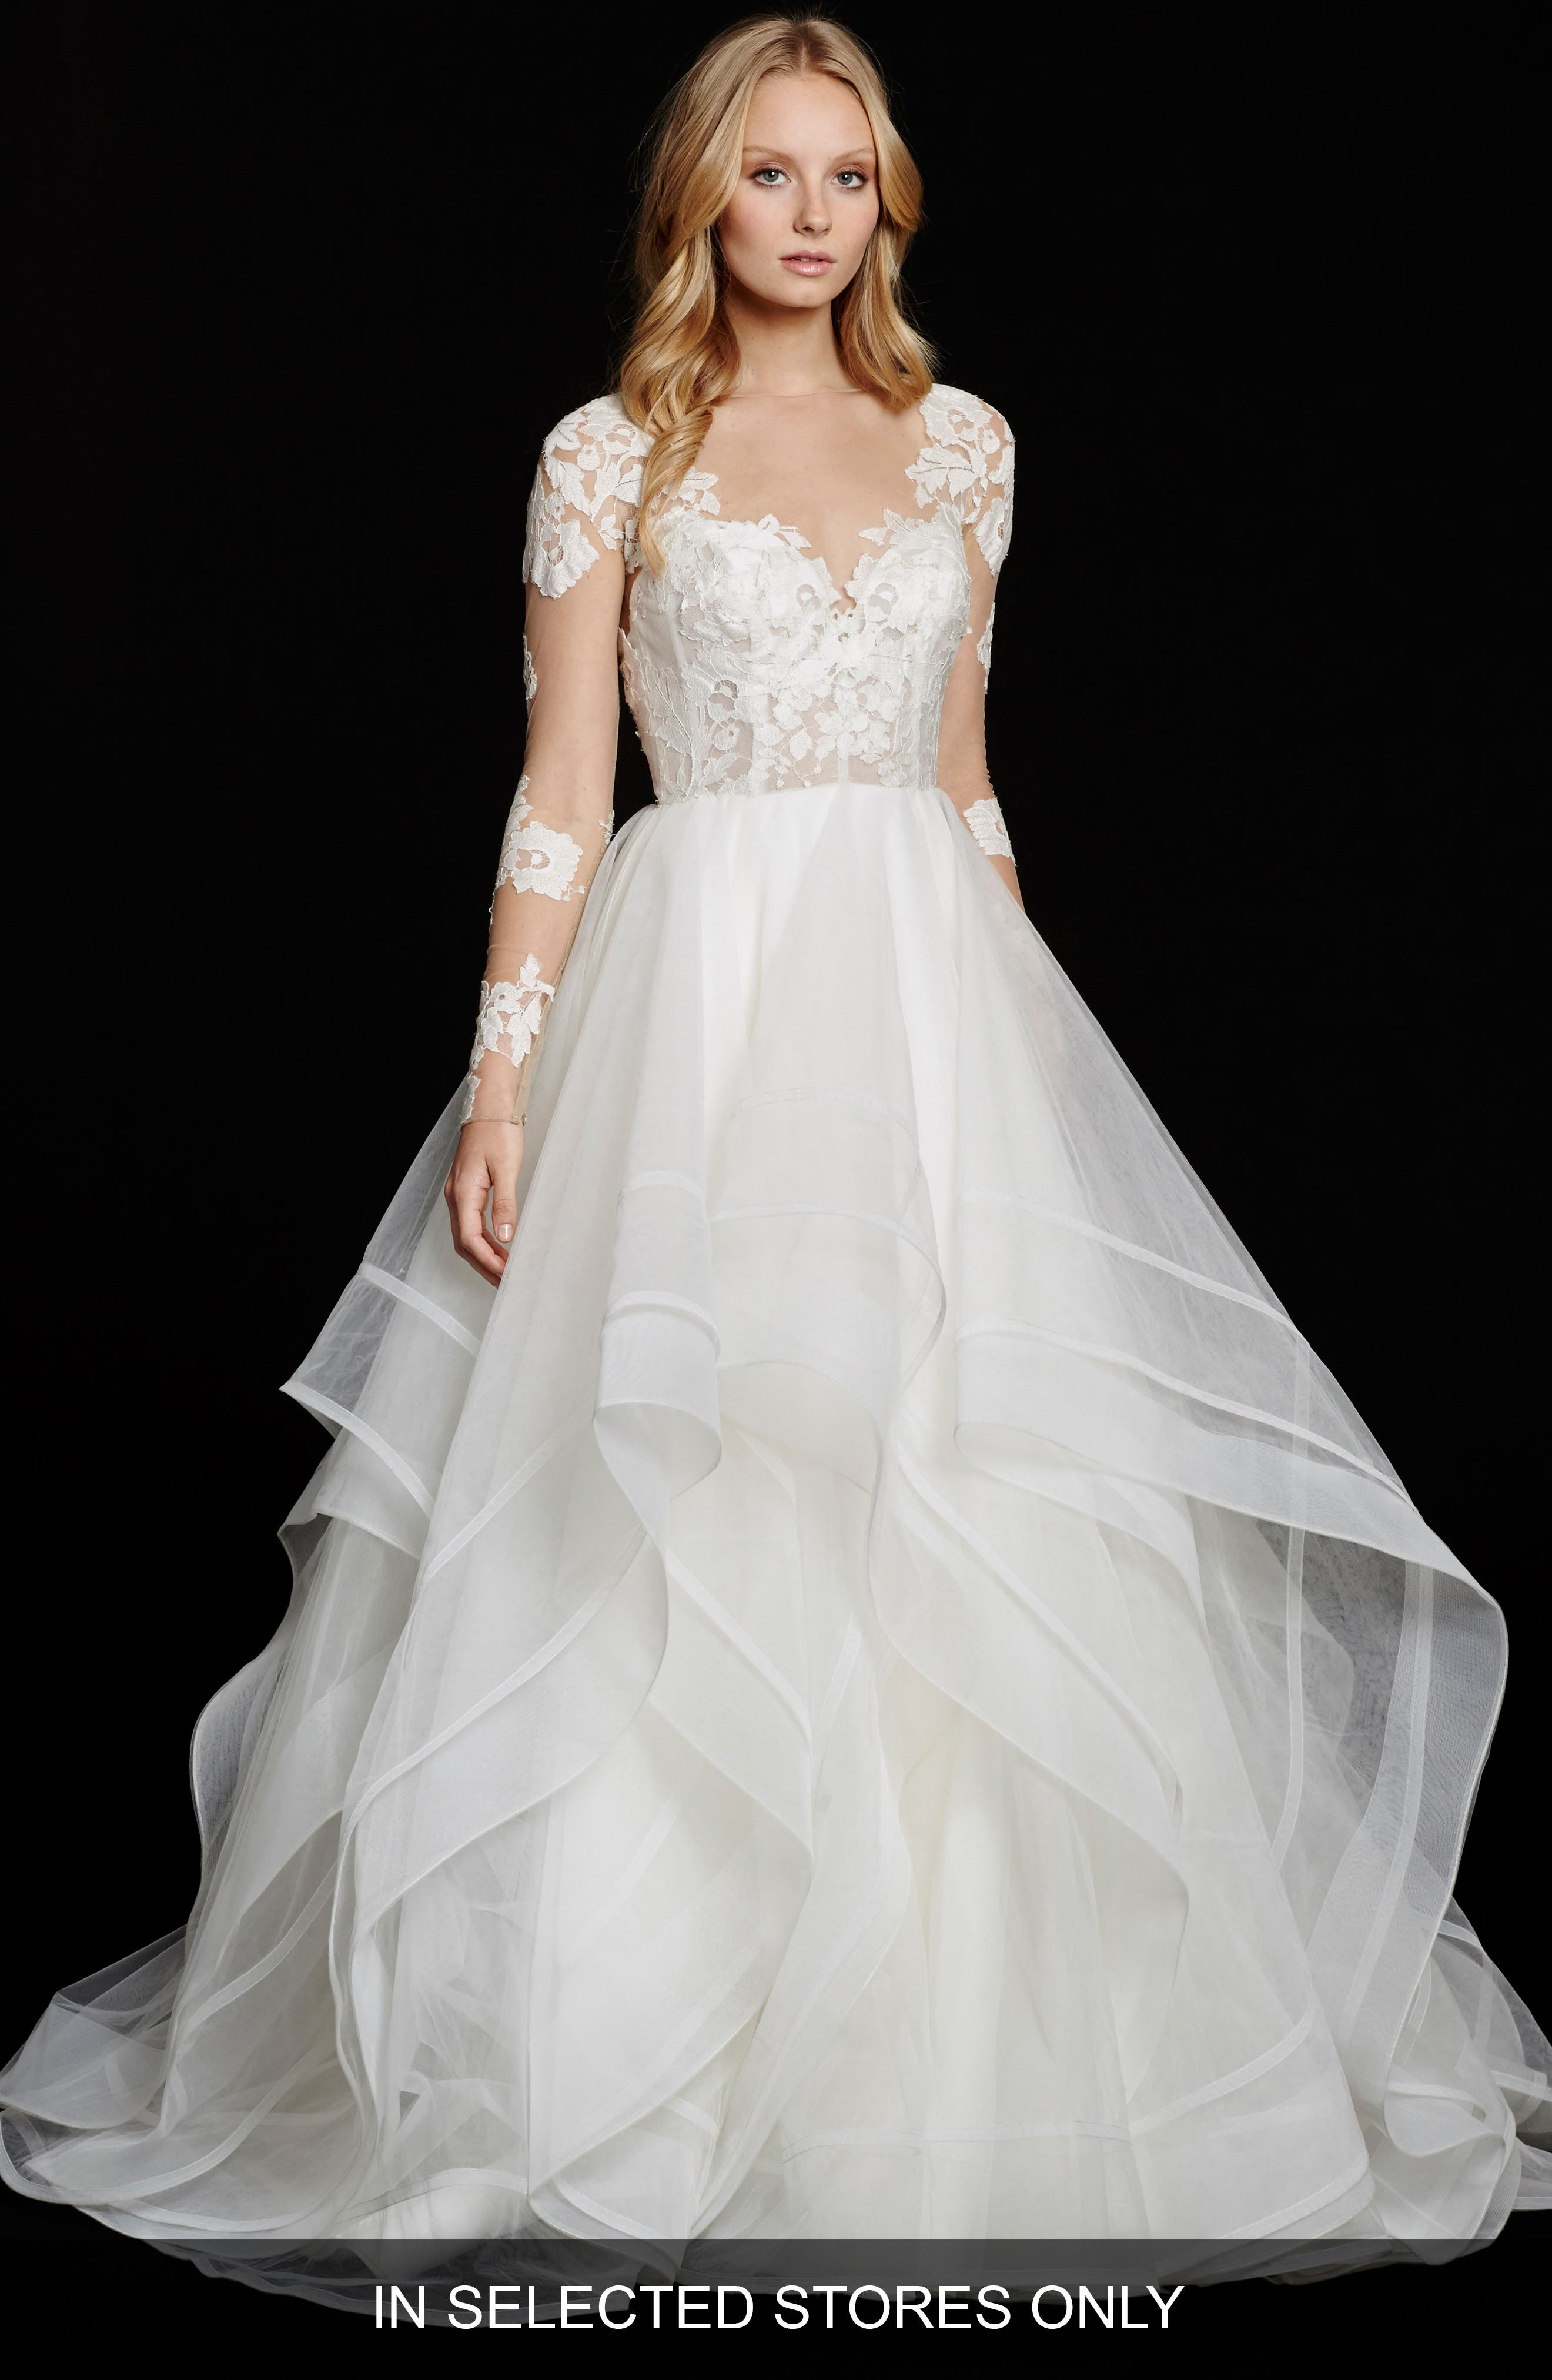 Elysia Long Sleeve Lace & Tulle Ballgown,                         Main,                         color, Ivory